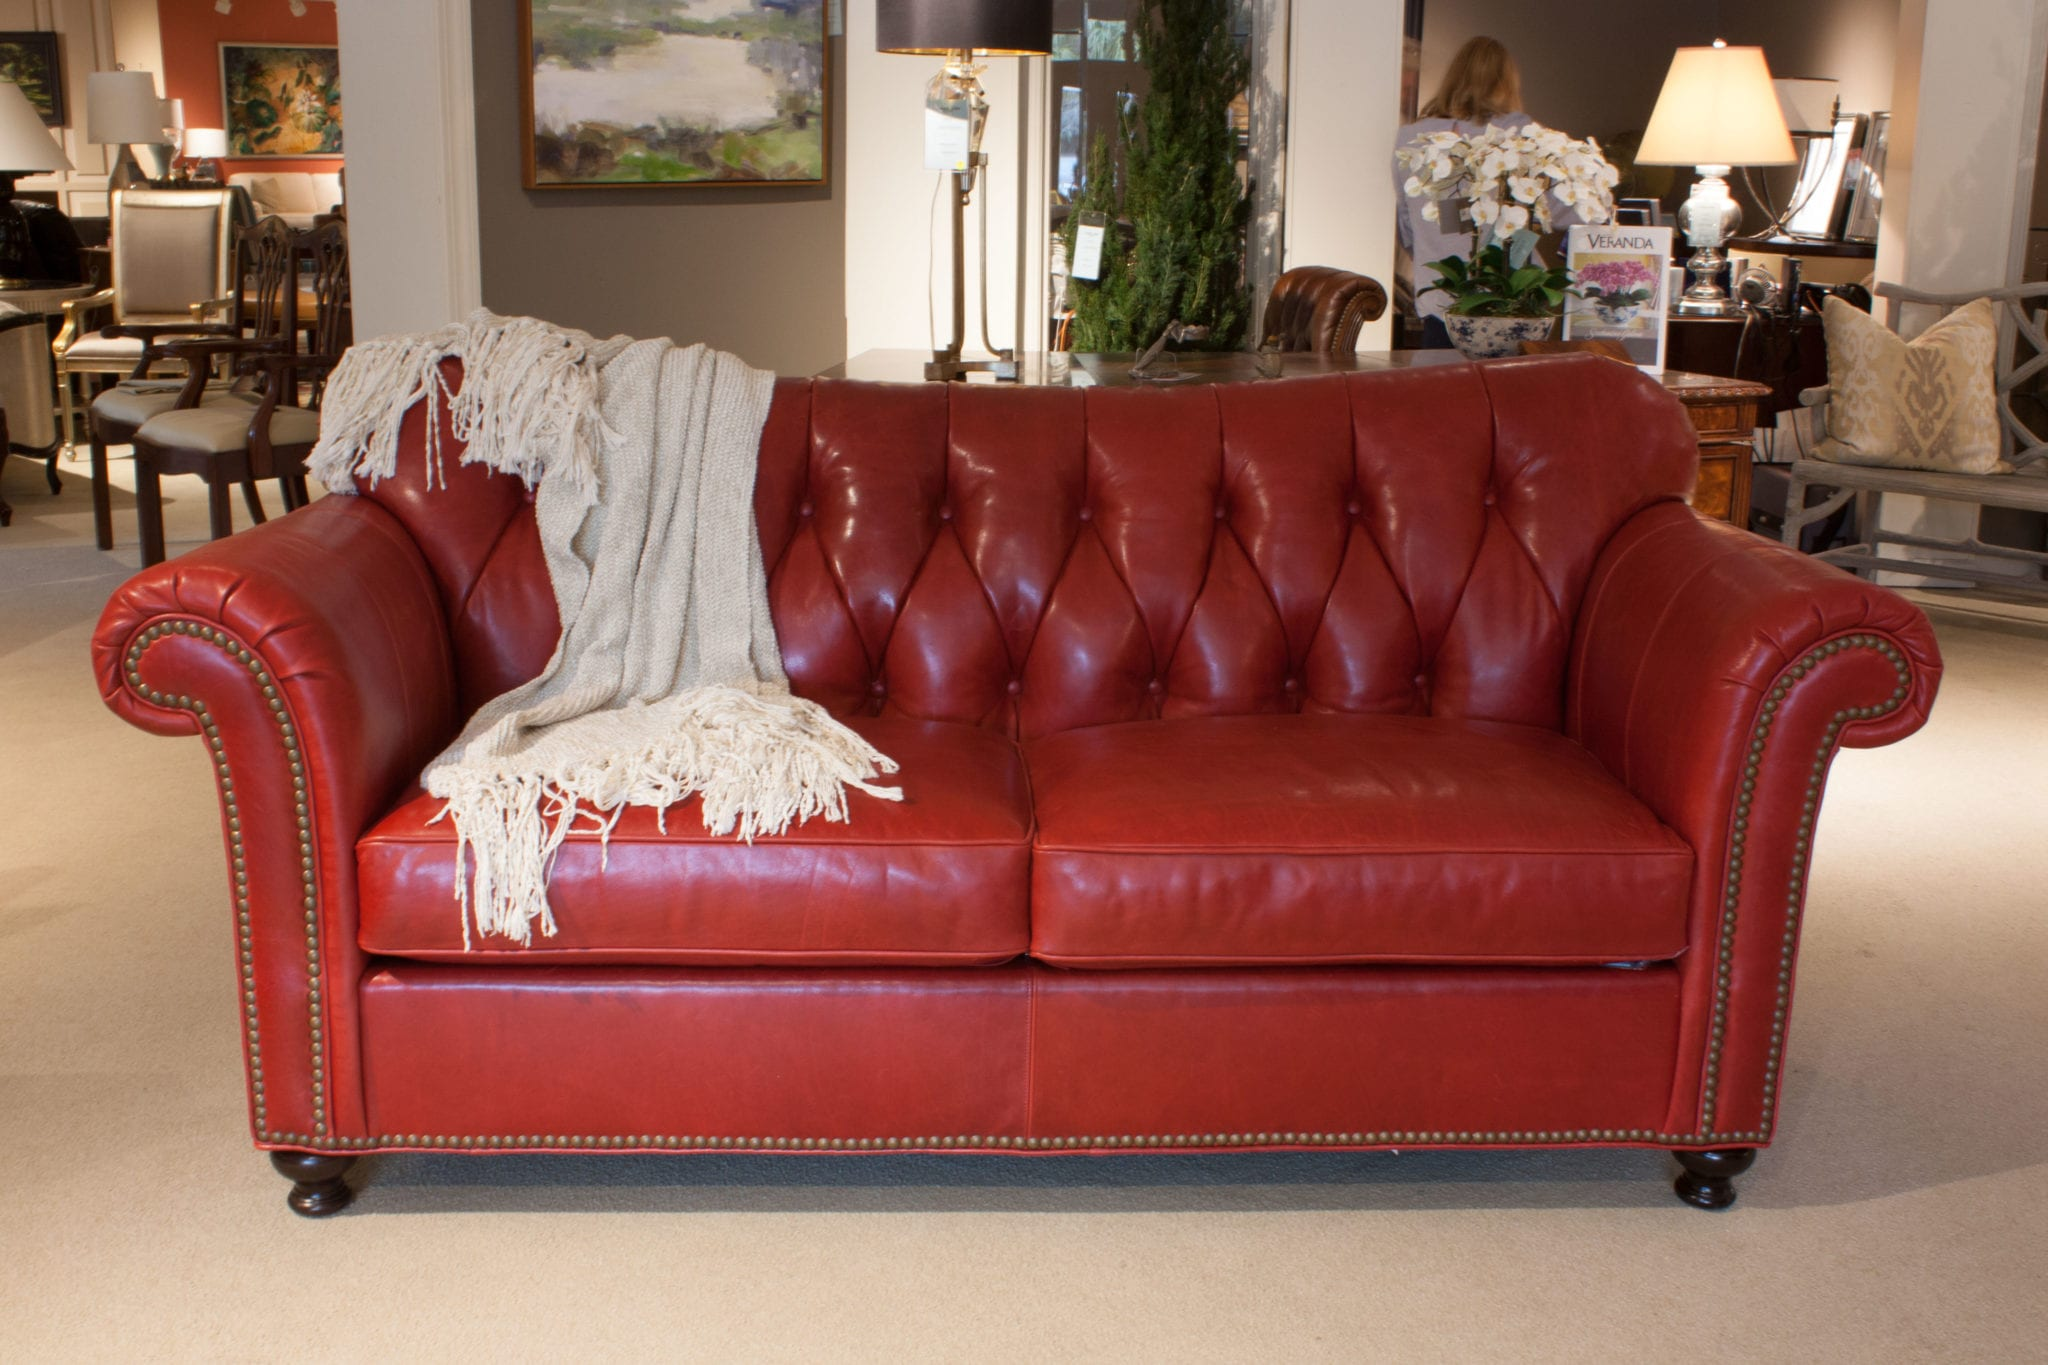 Formidable Sherrill Red Lear Sofa Sherrill Red Lear Sofa Souastern Galleries Red Lear Sofa Sectional Red Lear Sofa Beds houzz 01 Red Leather Sofa